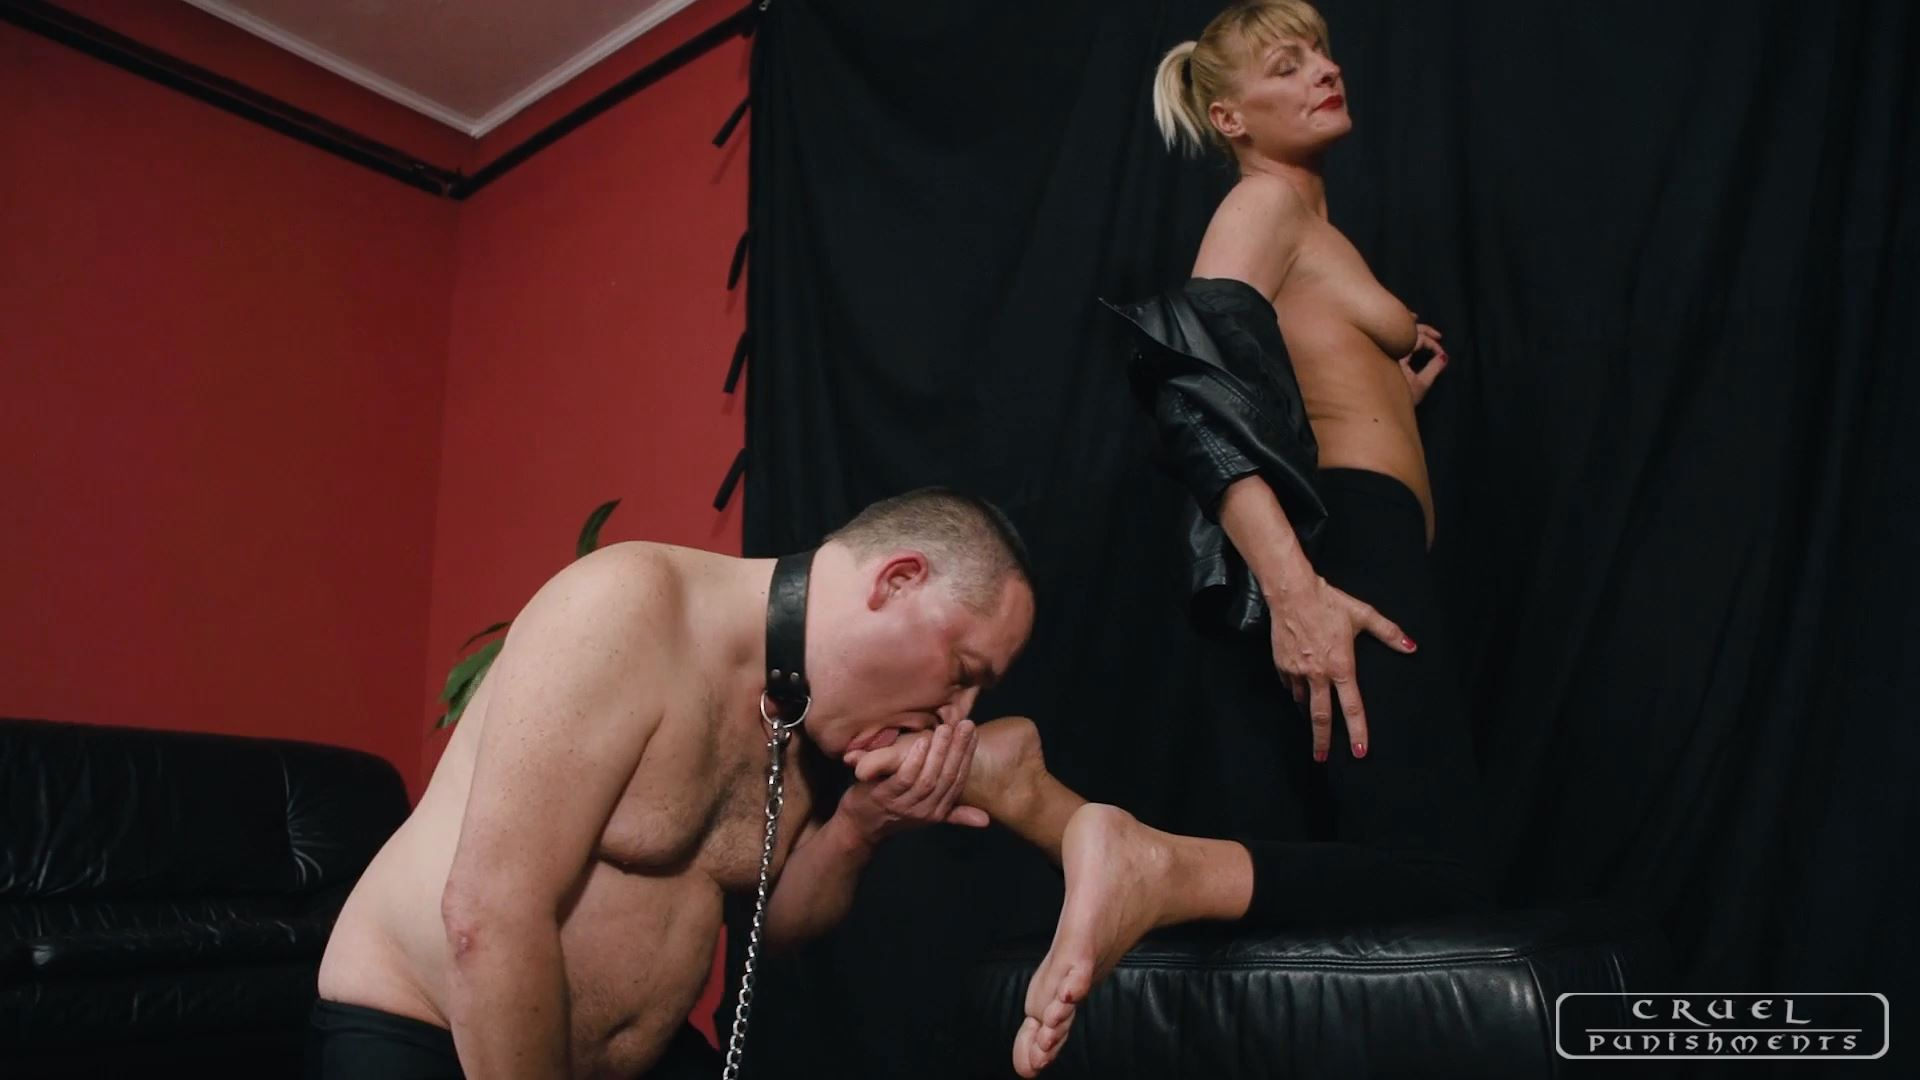 Mistress Bonnie In Scene: All the toes in his mouth - CRUEL PUNISHMENTS - SEVERE FEMDOM - FULL HD/1080p/MP4